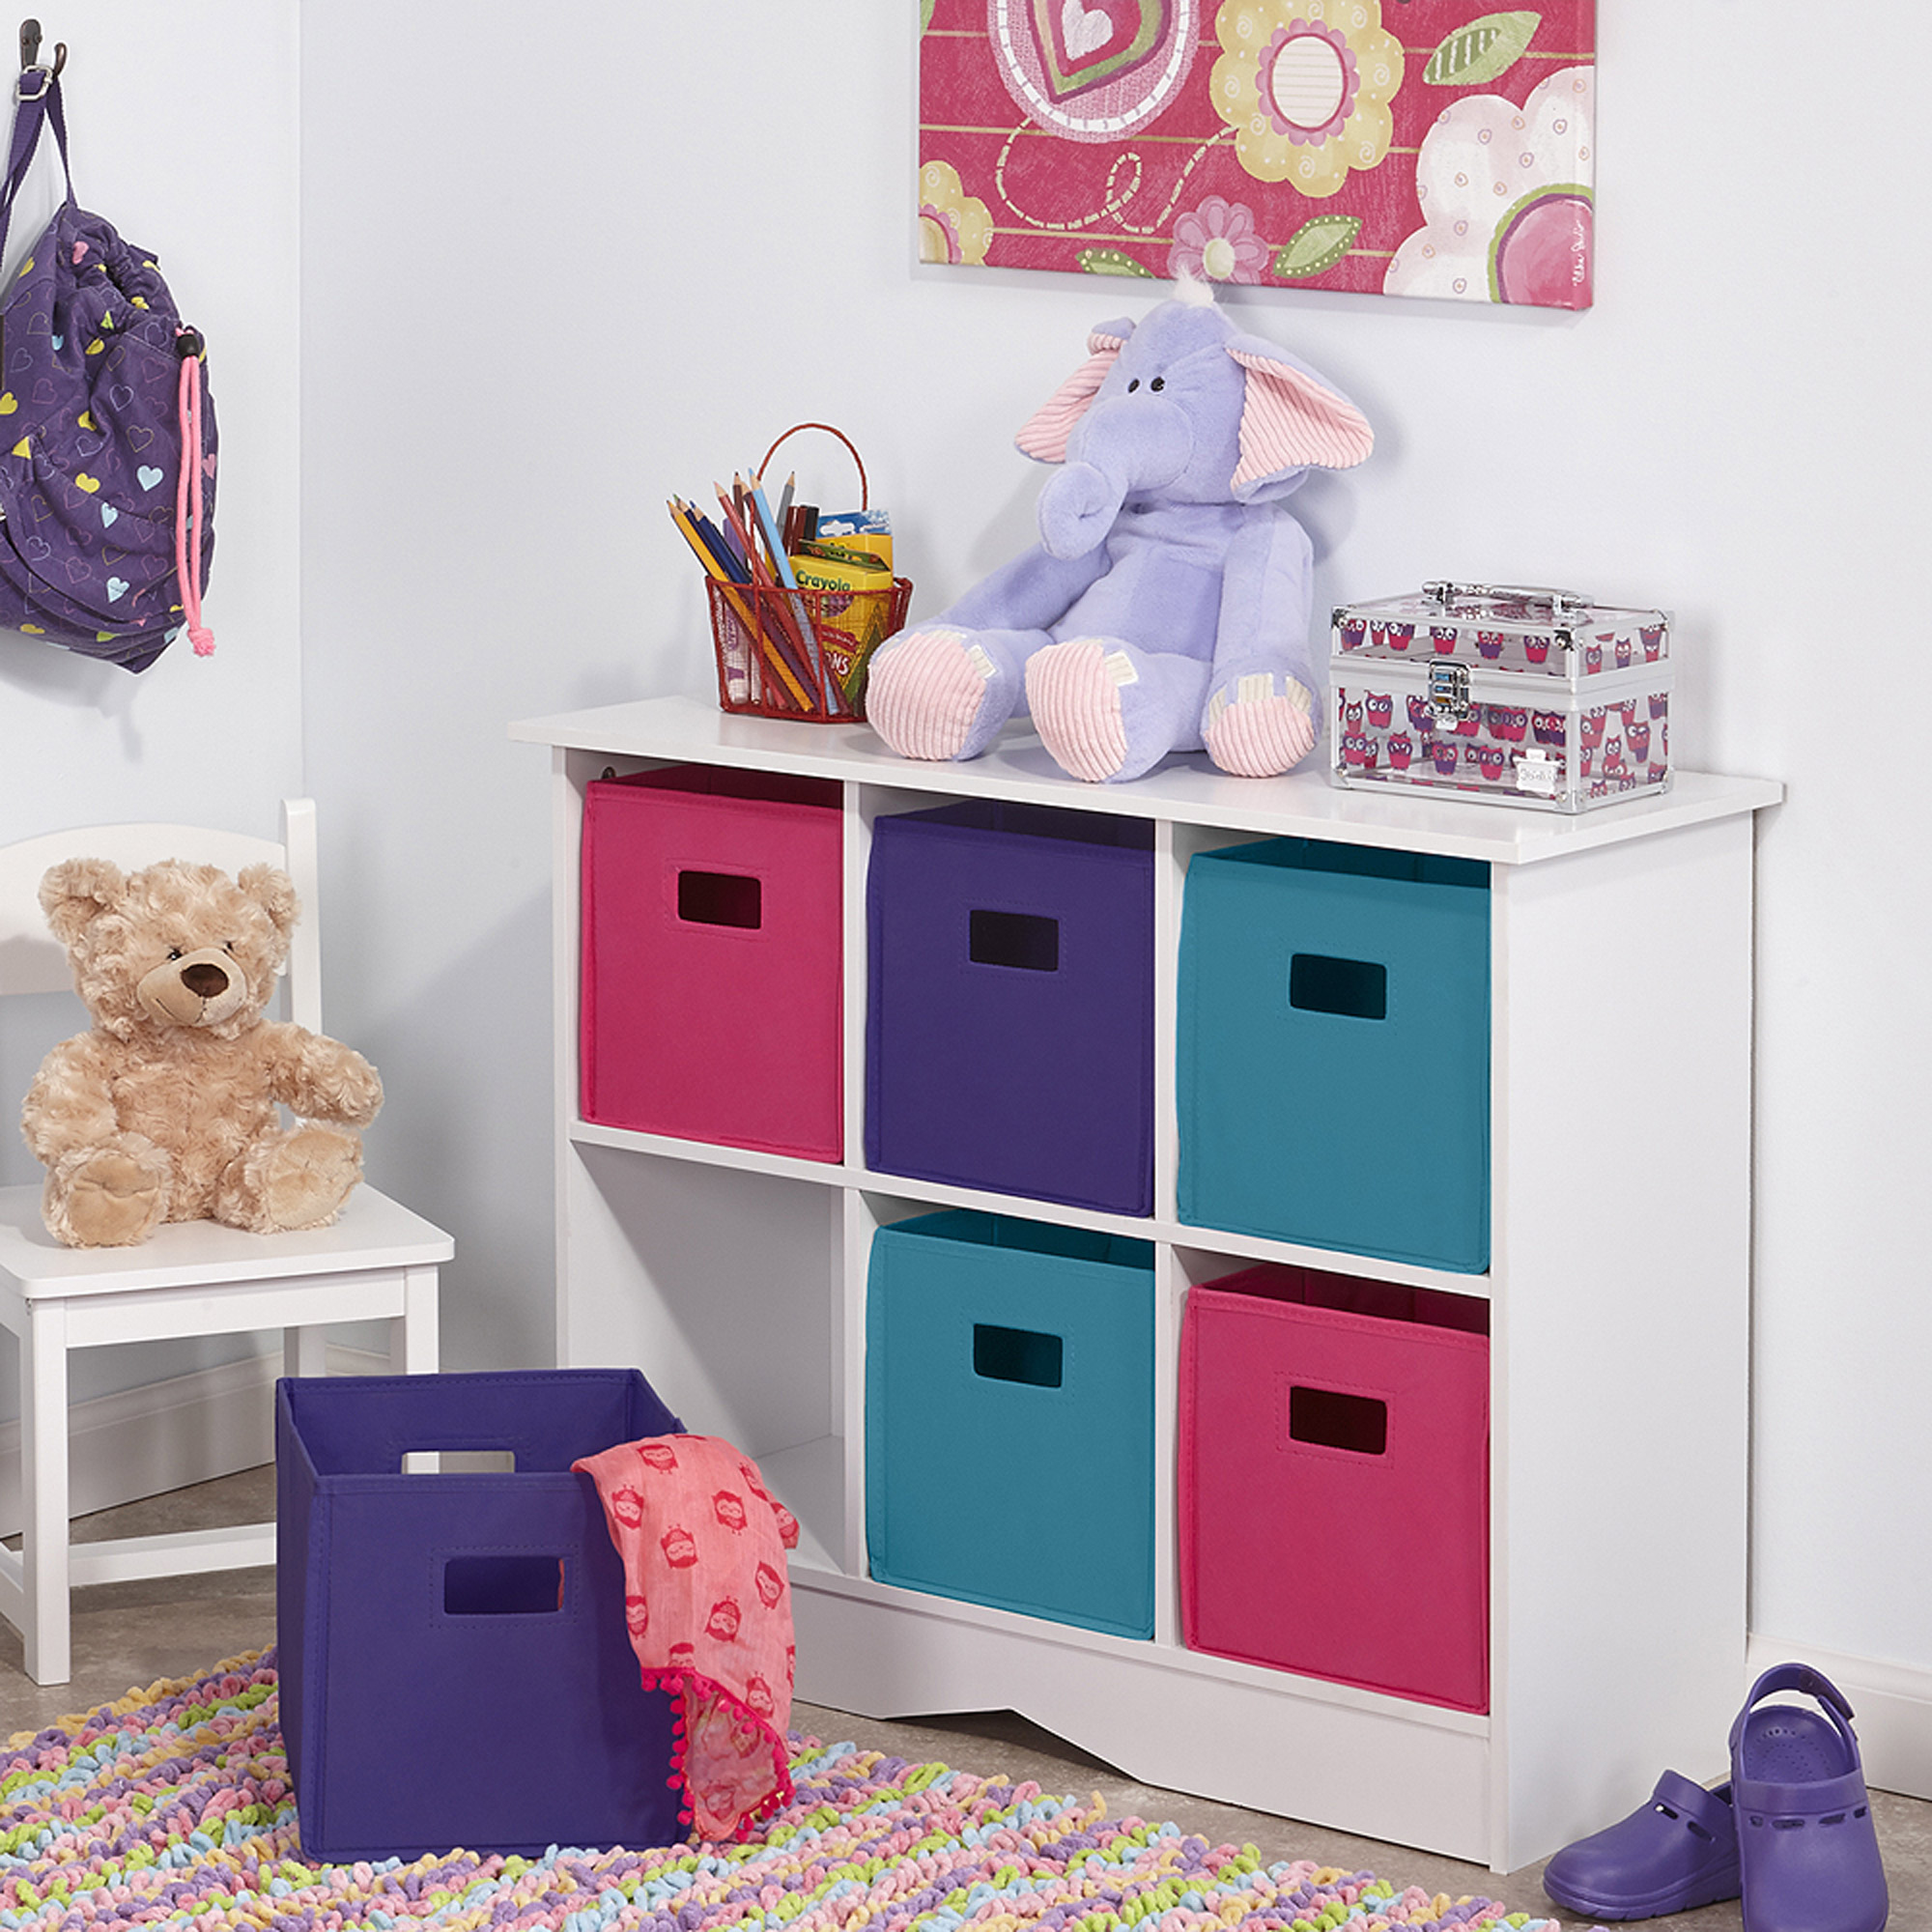 New Kids Playroom Nursery Storage Cabinet With 6 Bins White And Jewel Tones